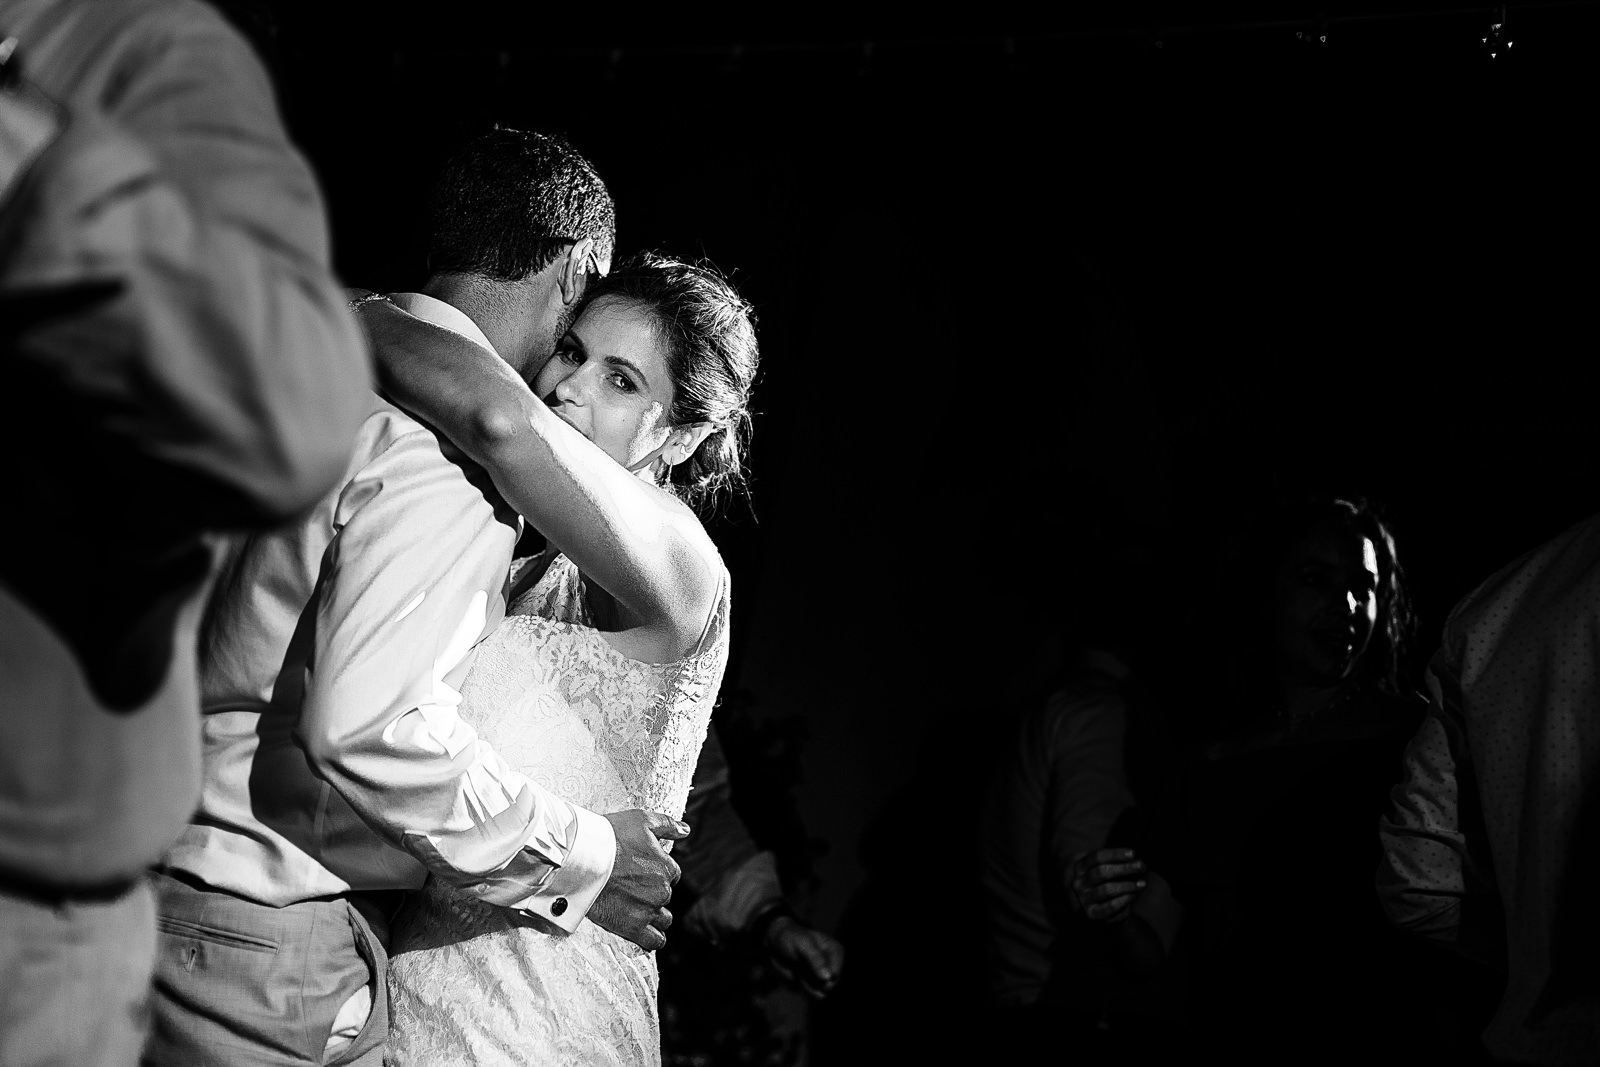 Destination wedding couple hugging and dancing during their reception party